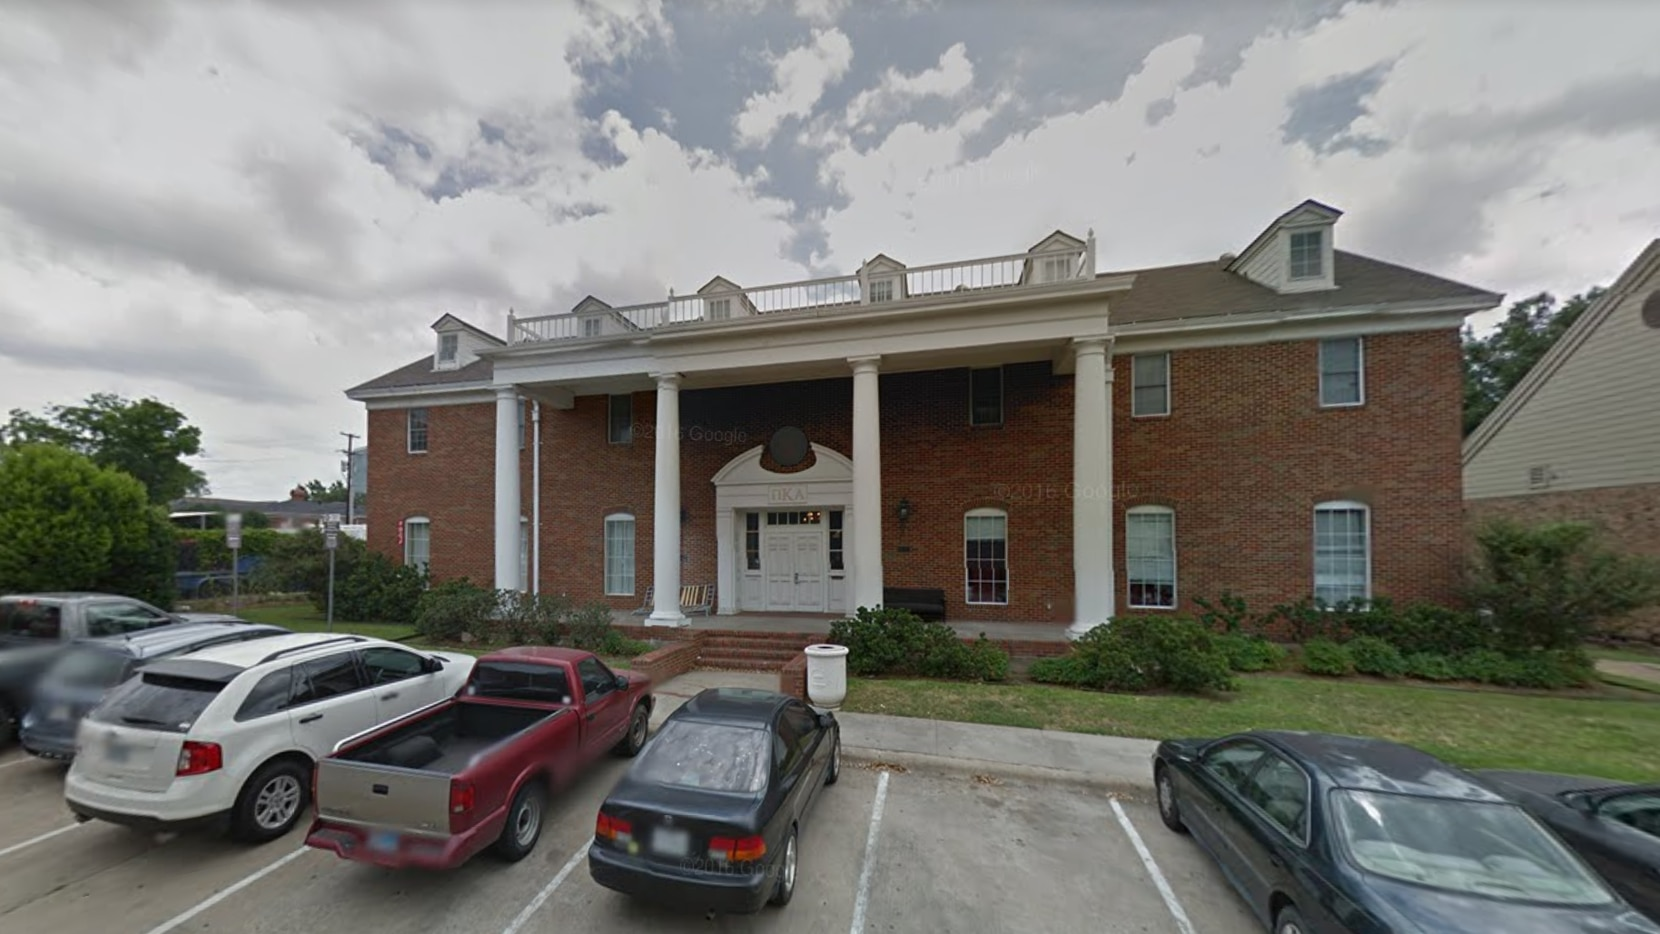 The fraternity house for Pi Kappa Alpha's chapter at Southern Methodist University. (Google Maps)